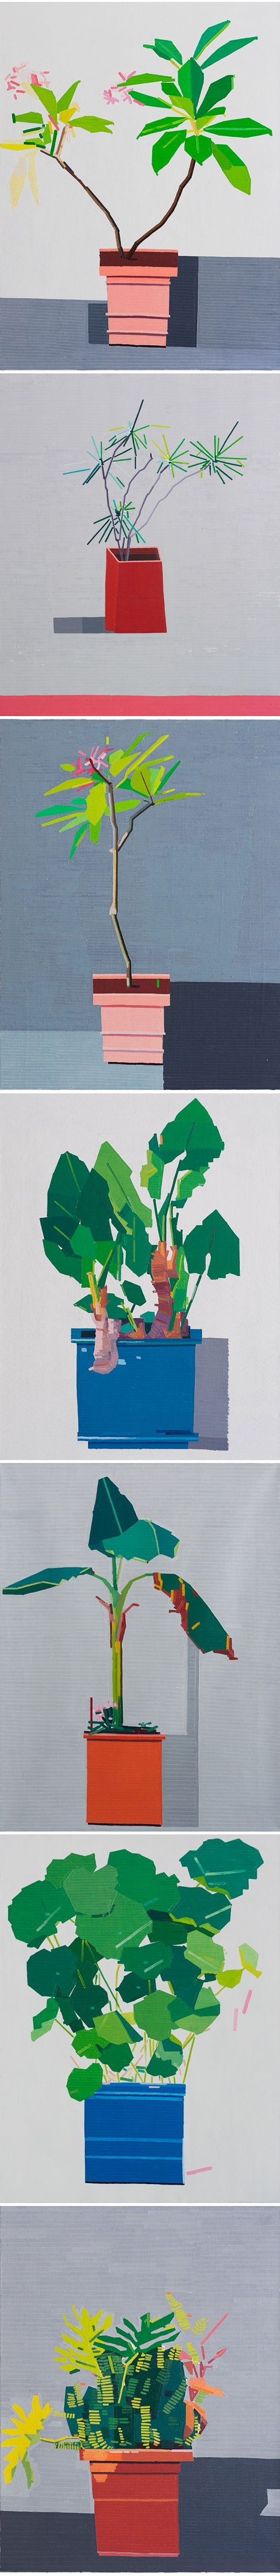 paintings by guy yanai